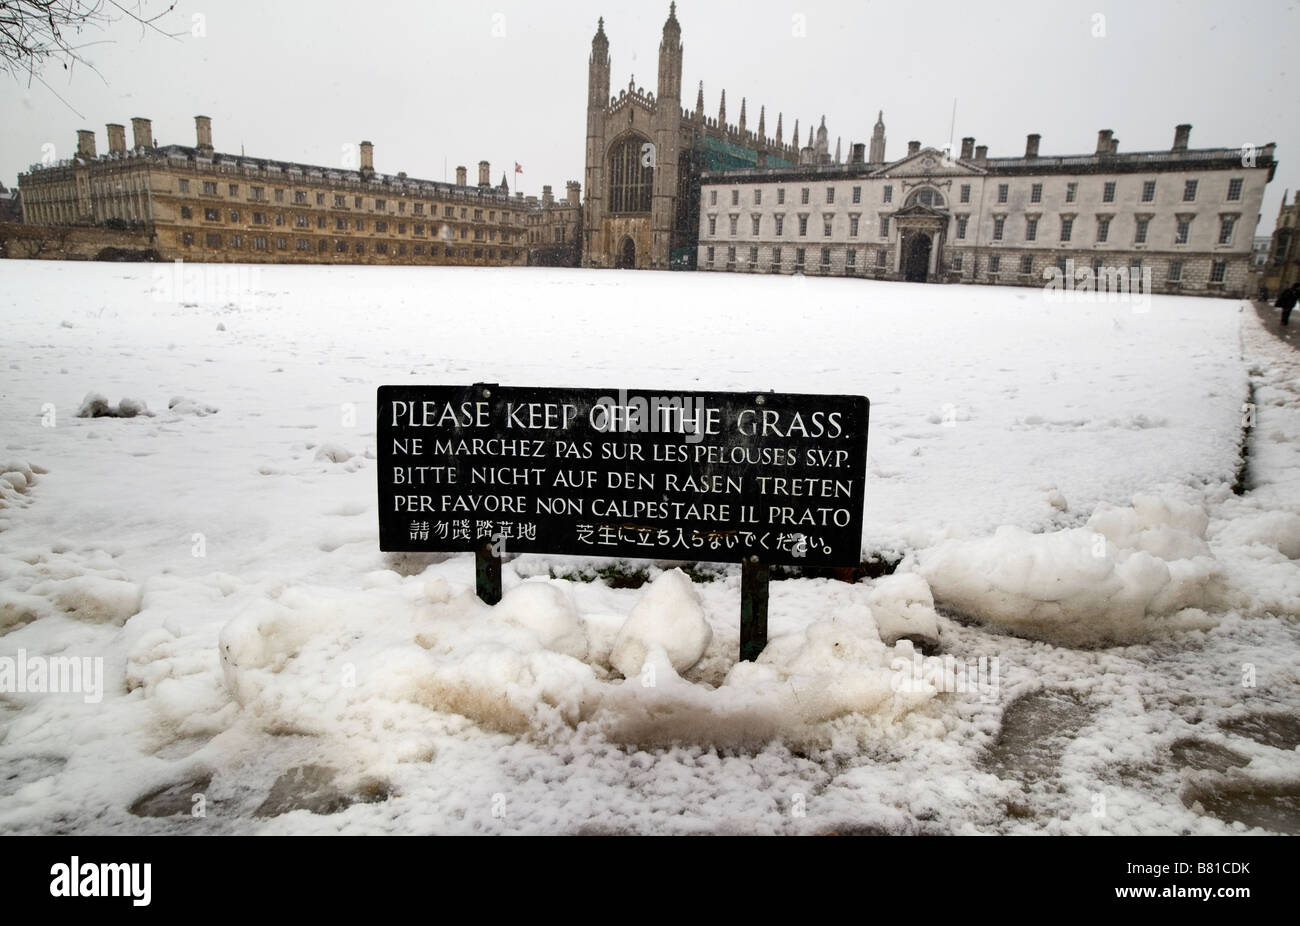 Heavy snow falls on Kings College Cambridge The University is celebrating it s 800th aniversary this year - Stock Image